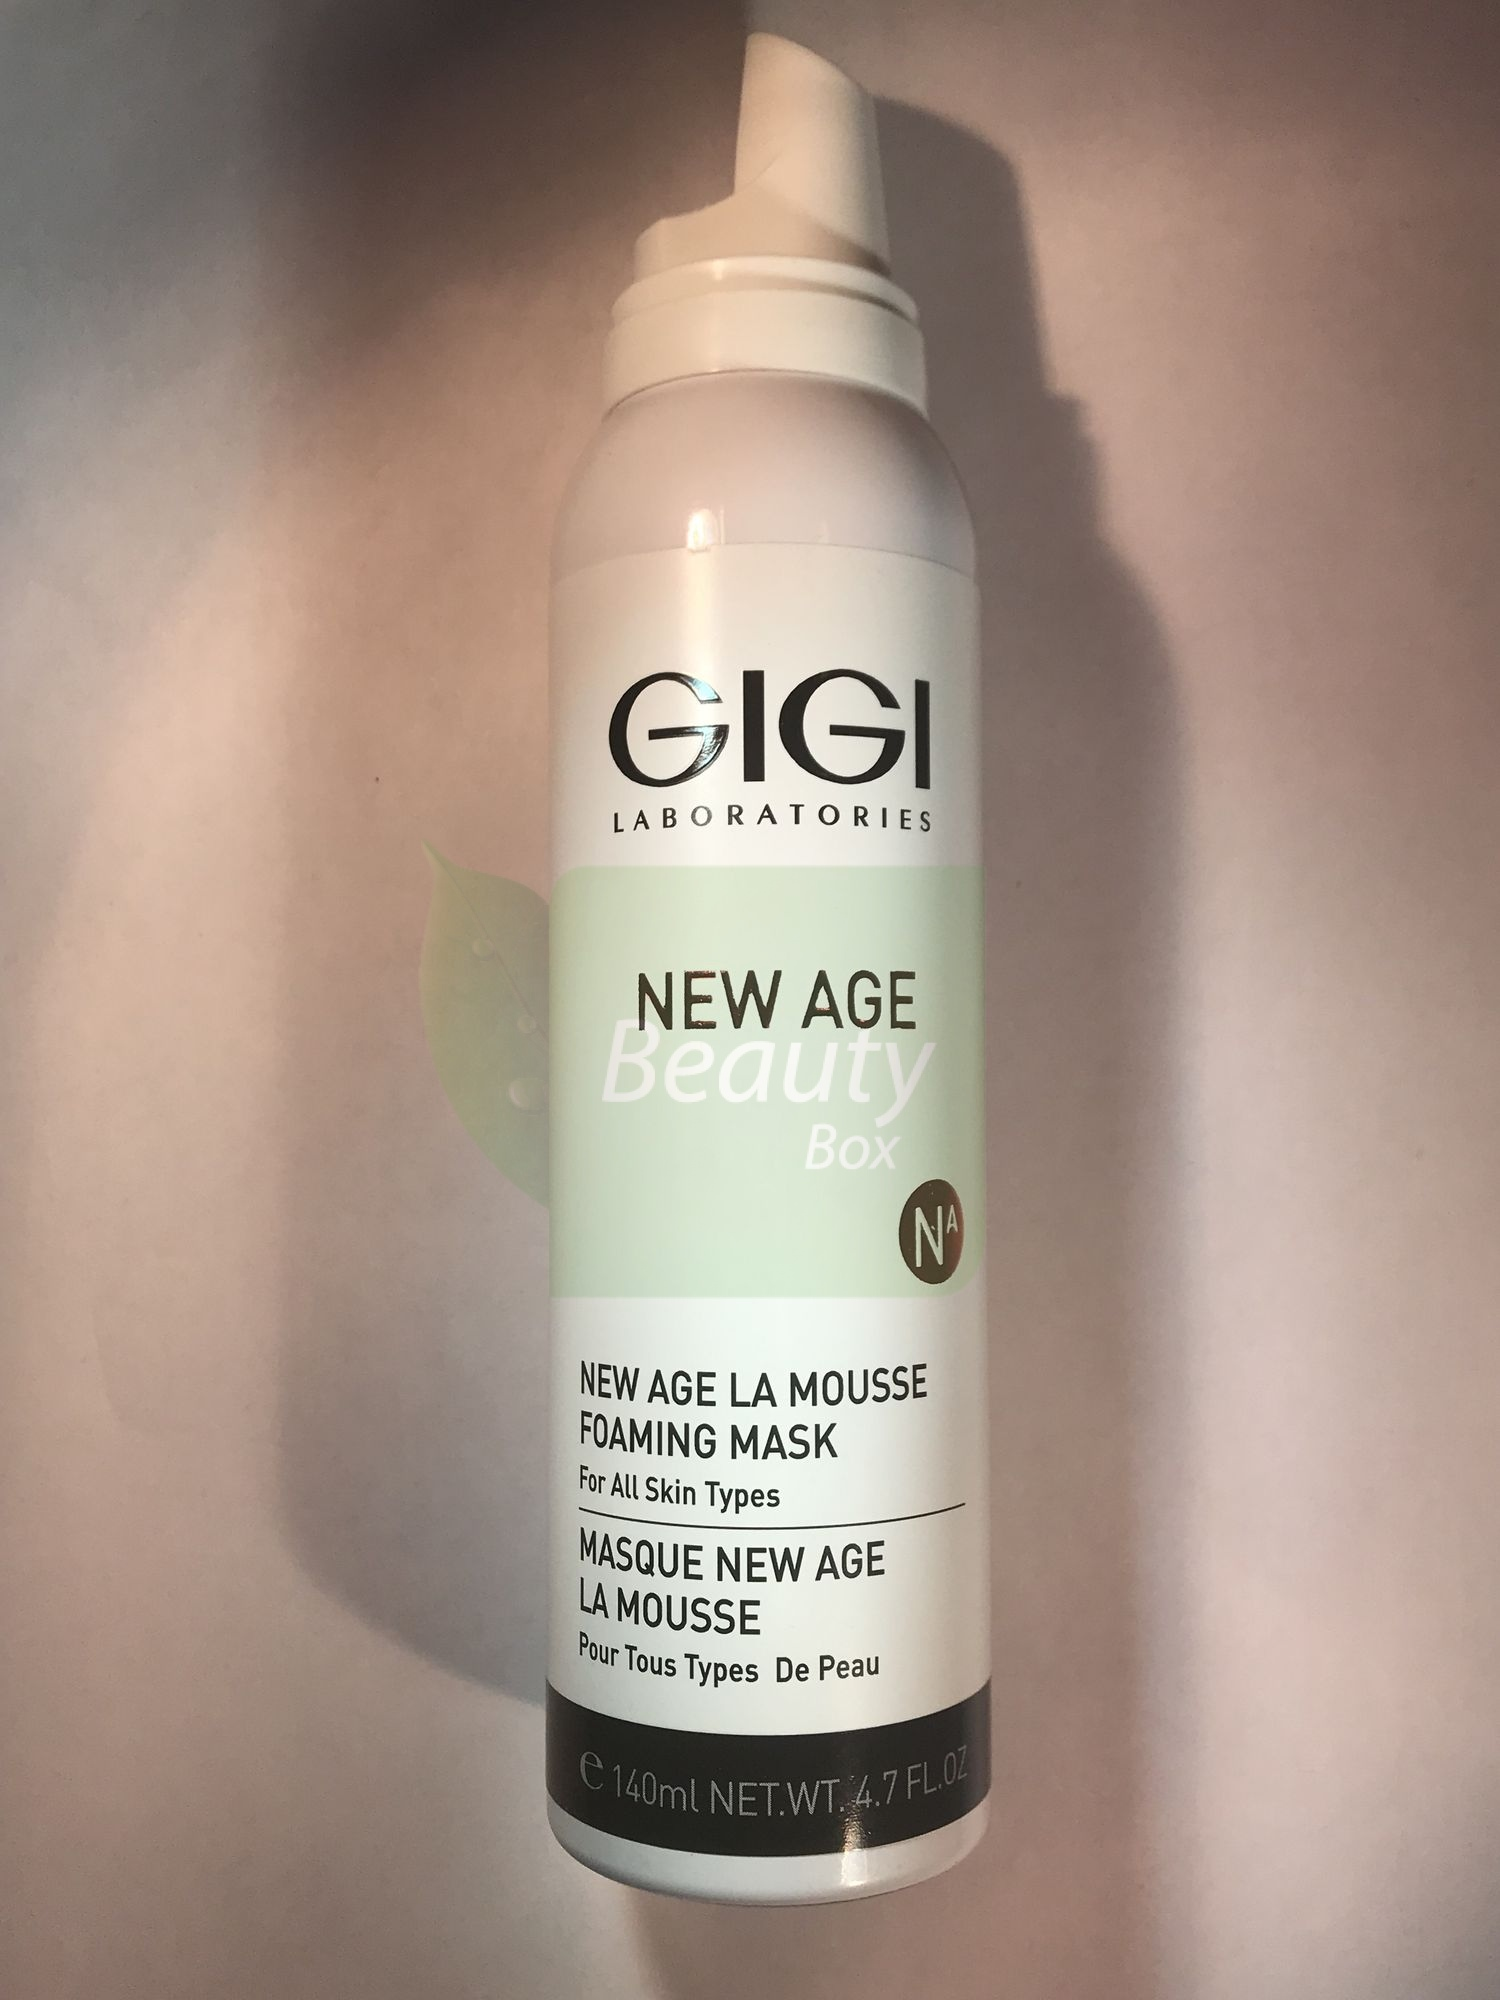 New Age Foaming Mask